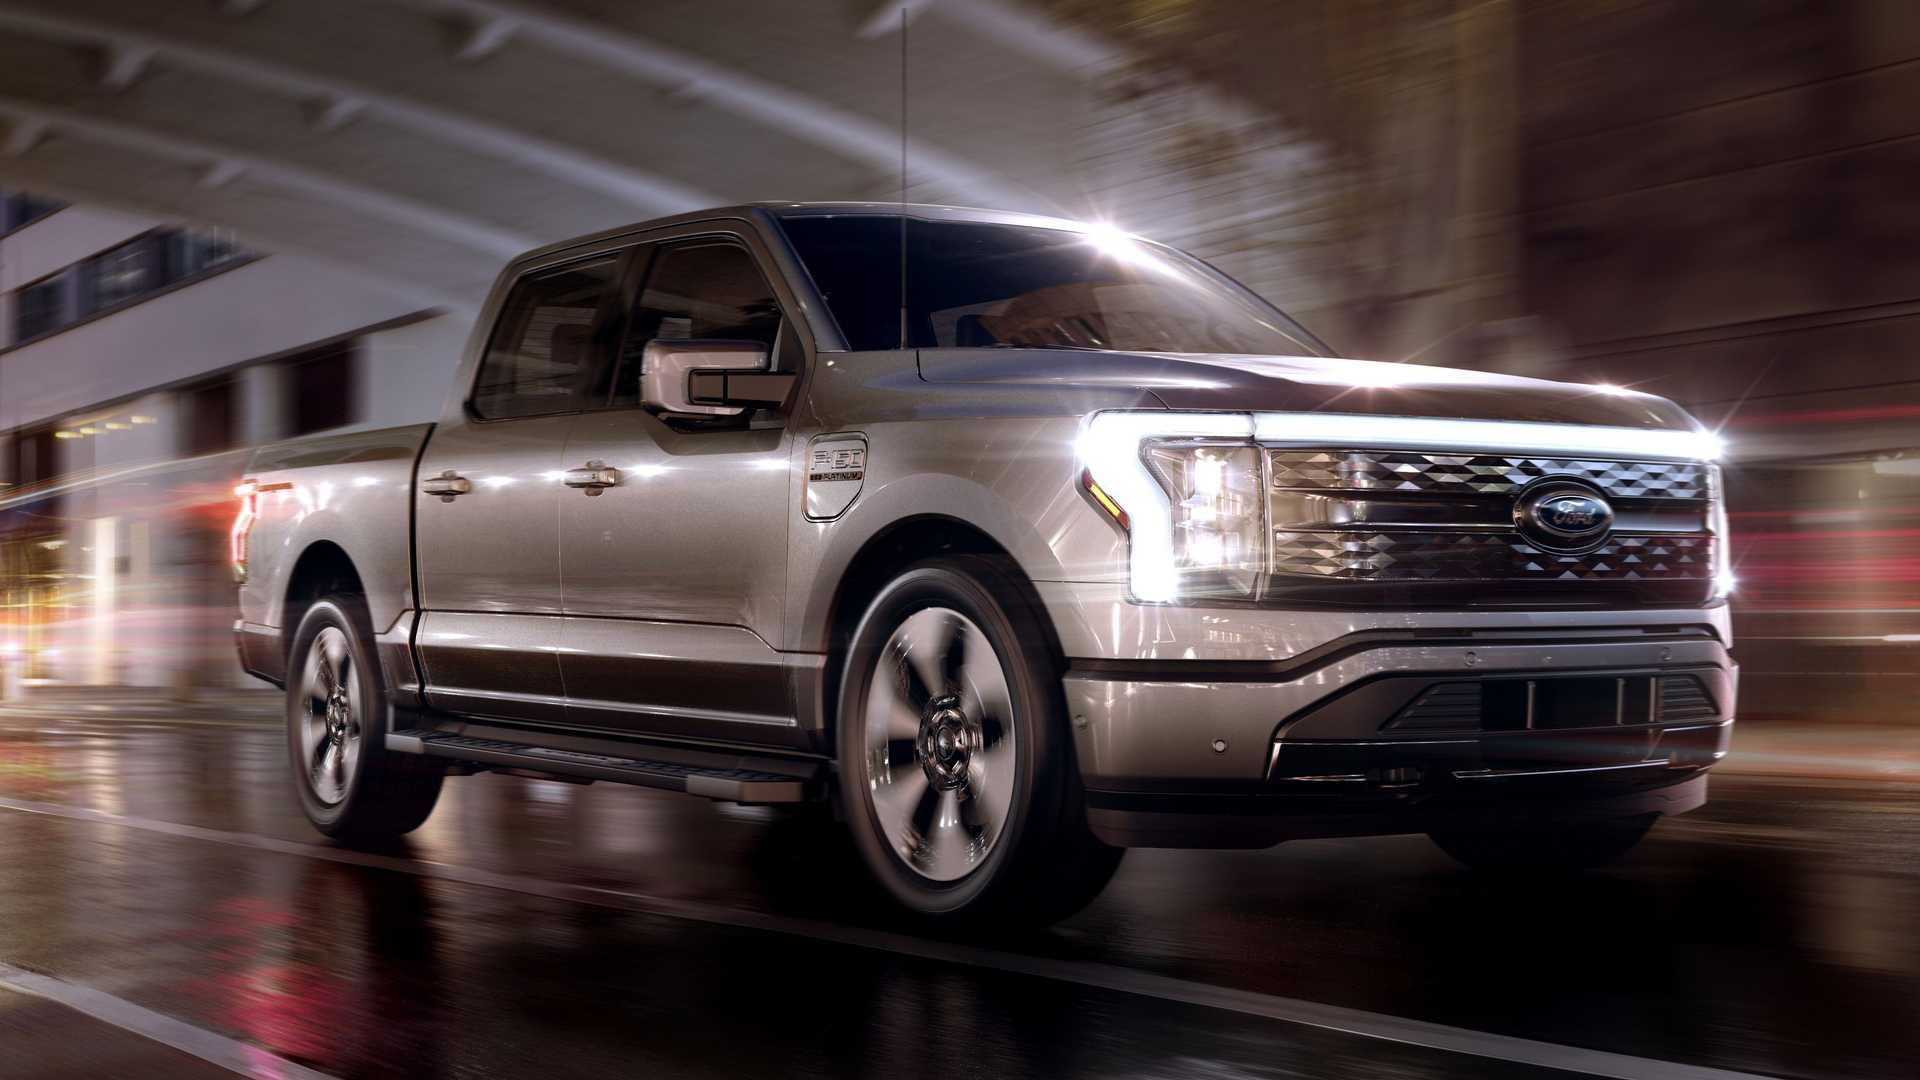 The all-electric Lightning version of the Ford F-150 is finally here, rocking a body made of military-grade aluminum, the sturdiest frame so far, and a high-end powertrain.